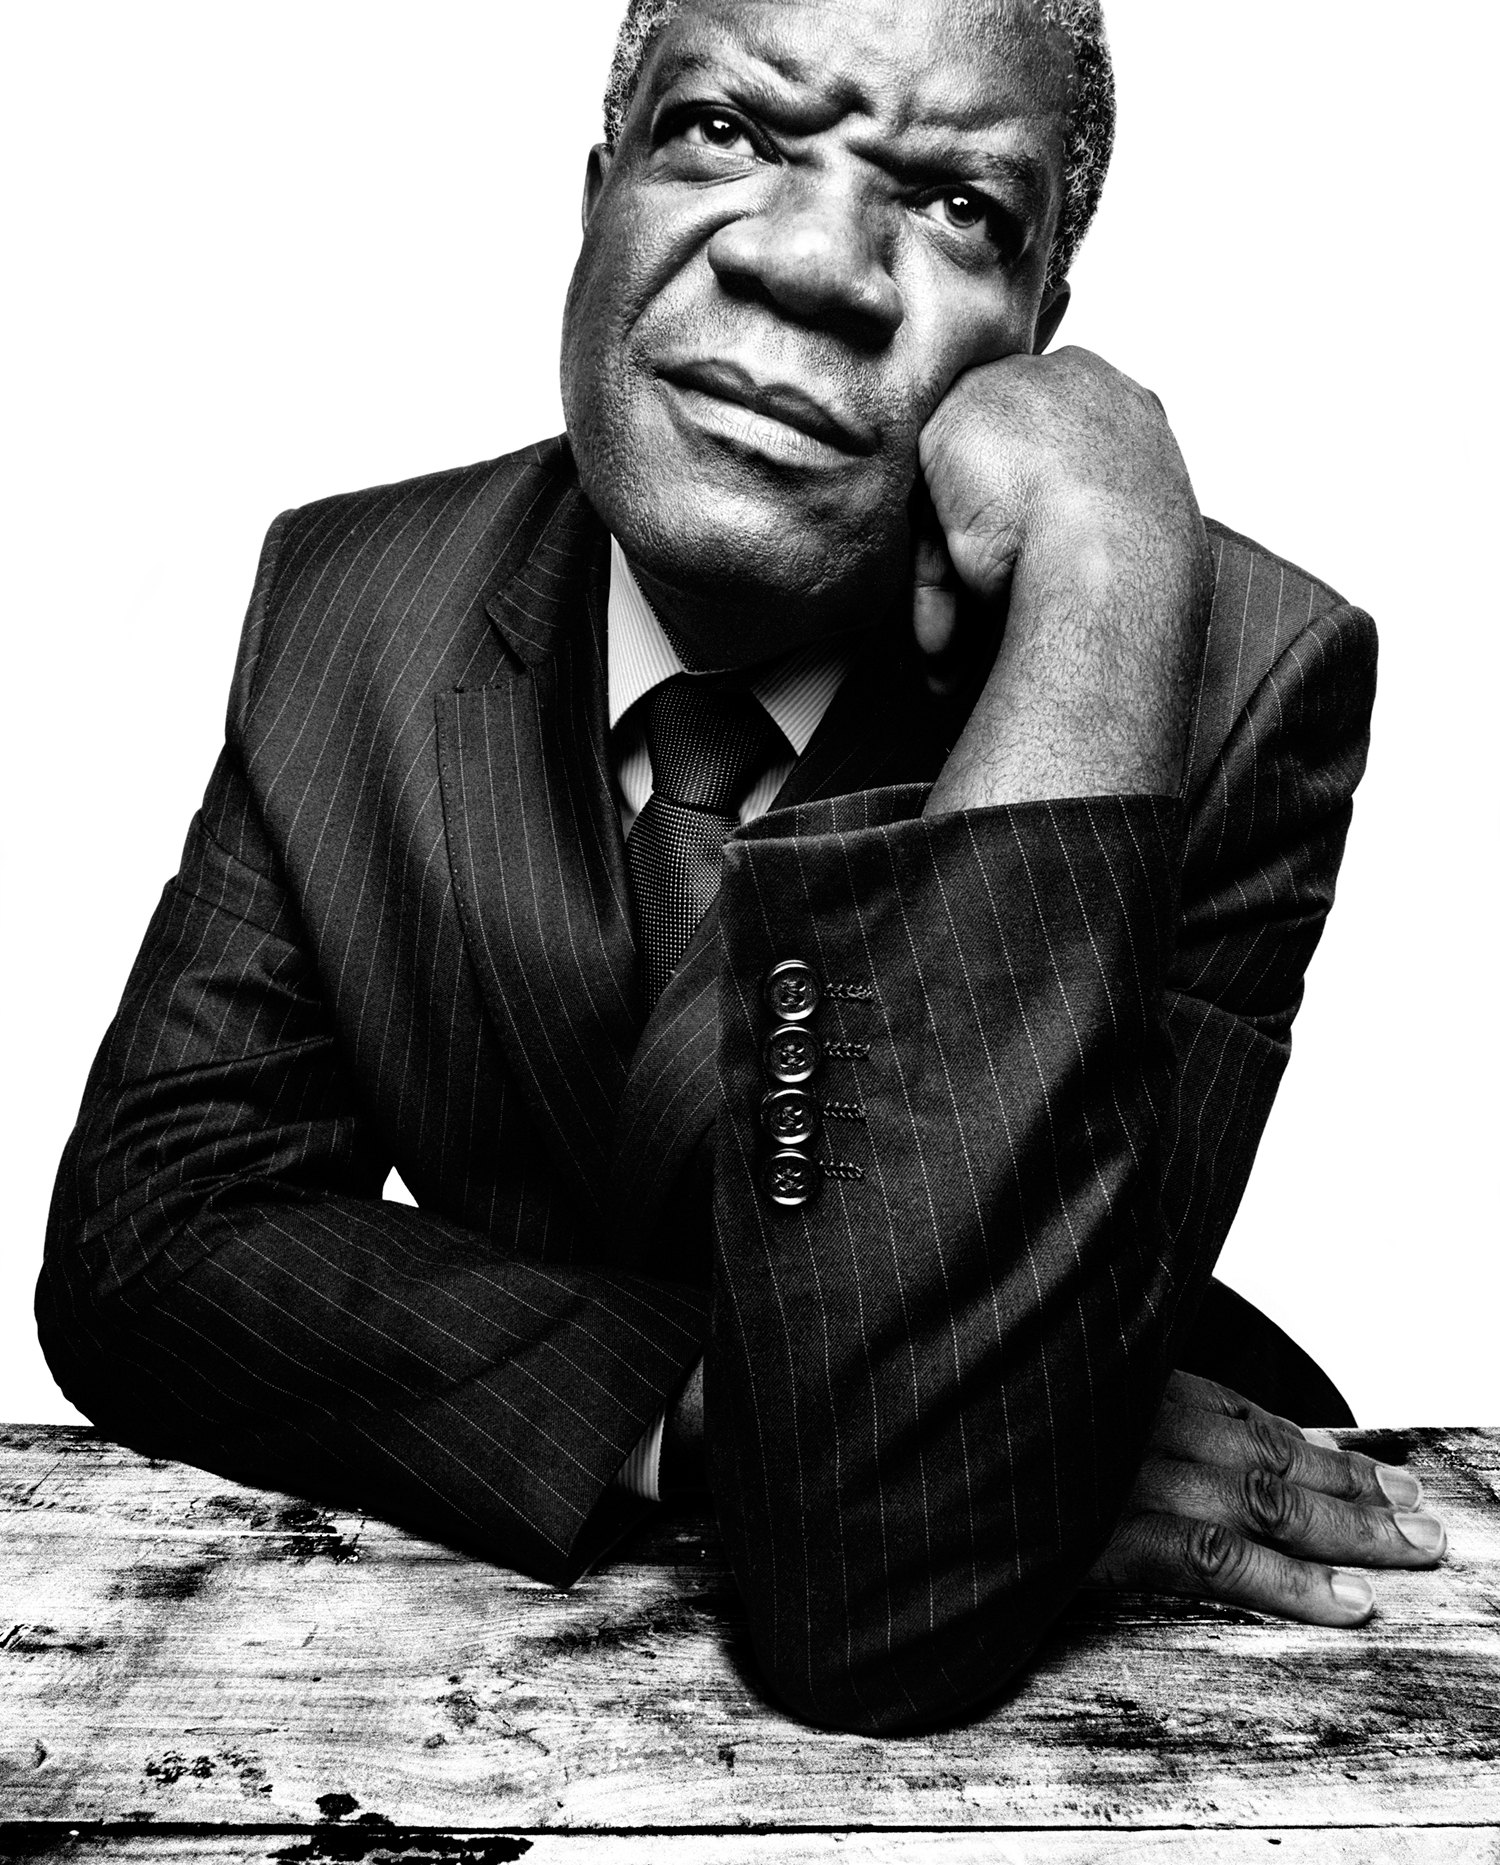 Dr. Denis Mukwege is a Congolese gynecologist who has devoted the past 15 years to treating women who have been traumatized by rape and calling for those who commit this crime to be brought to justice. In 2012, Dr. Mukwege gave a speech at the United Nations condemning the lack of accountability for rape in Congo, openly criticizing the international community, armed groups, and the Congolese government. In 2012, Dr. Mukwege survived an assassination attempt during which his bodyguard was killed. He and his family fled Congo, but returned in 2012 to continue his work at Panzi Hospital, where he and his colleagues provide medical and psychological care for thousands of survivors of rape.